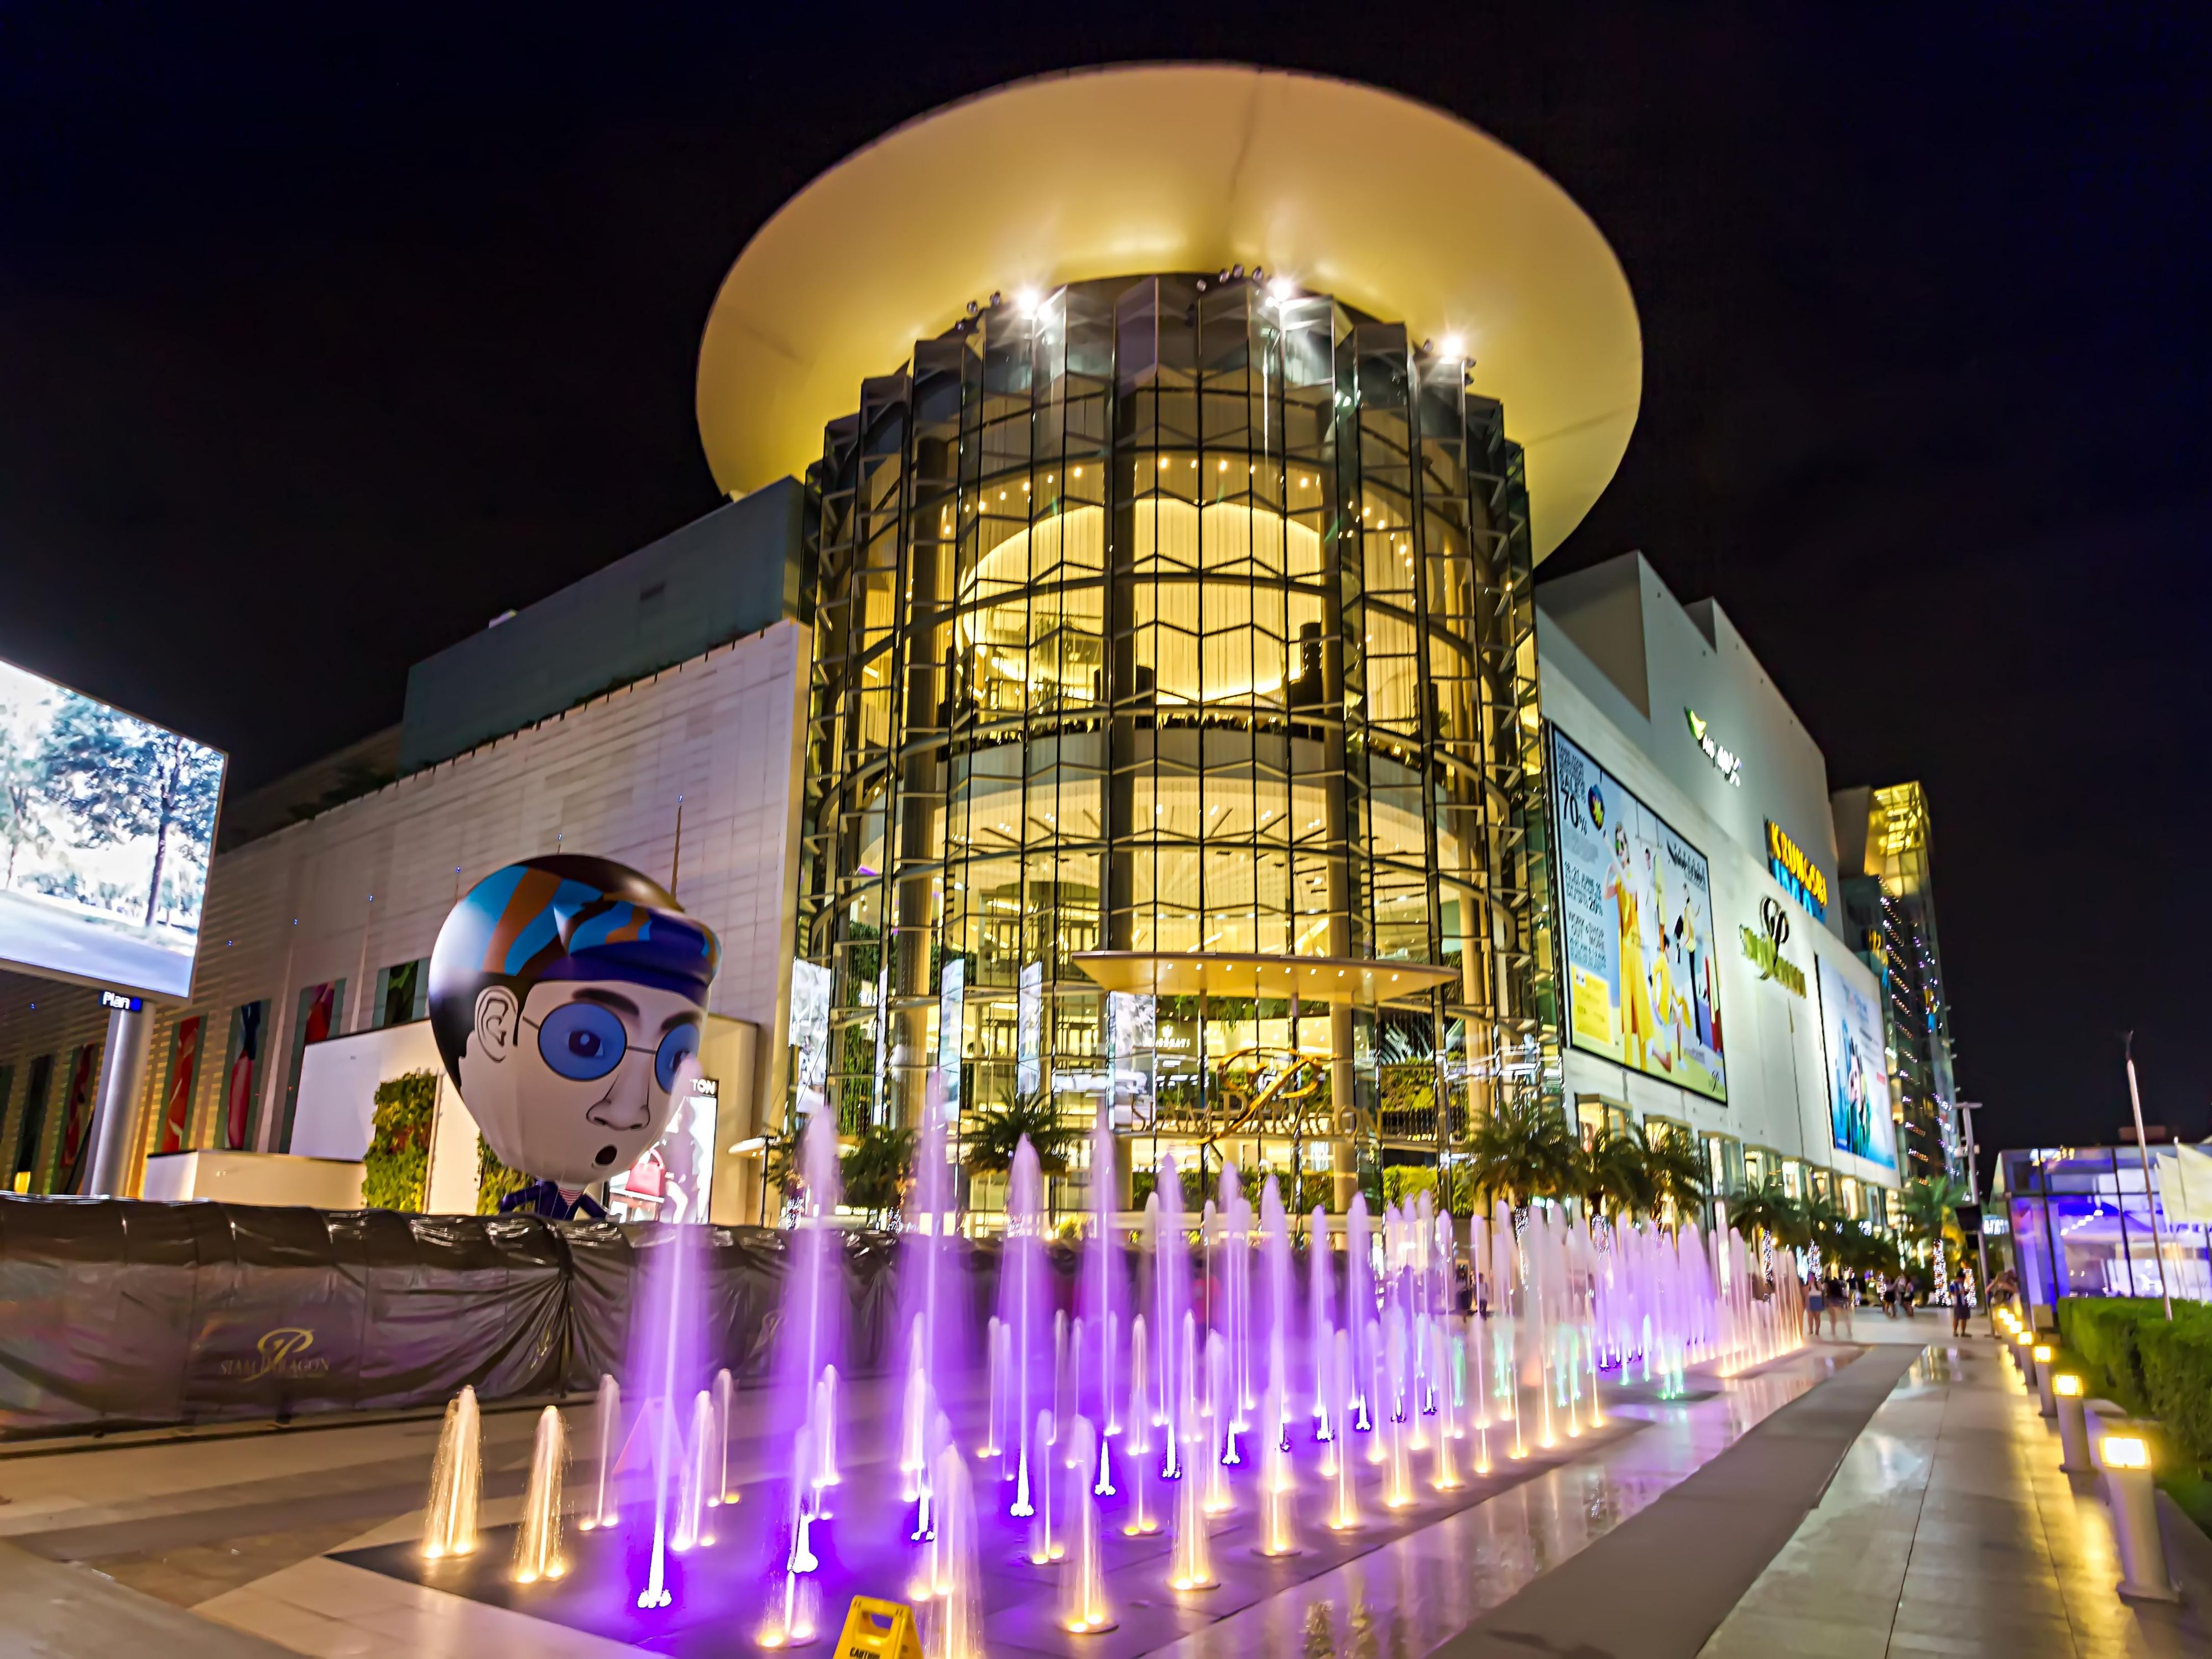 Siam Paragon Shopping Mall-within walking distance from our hotel